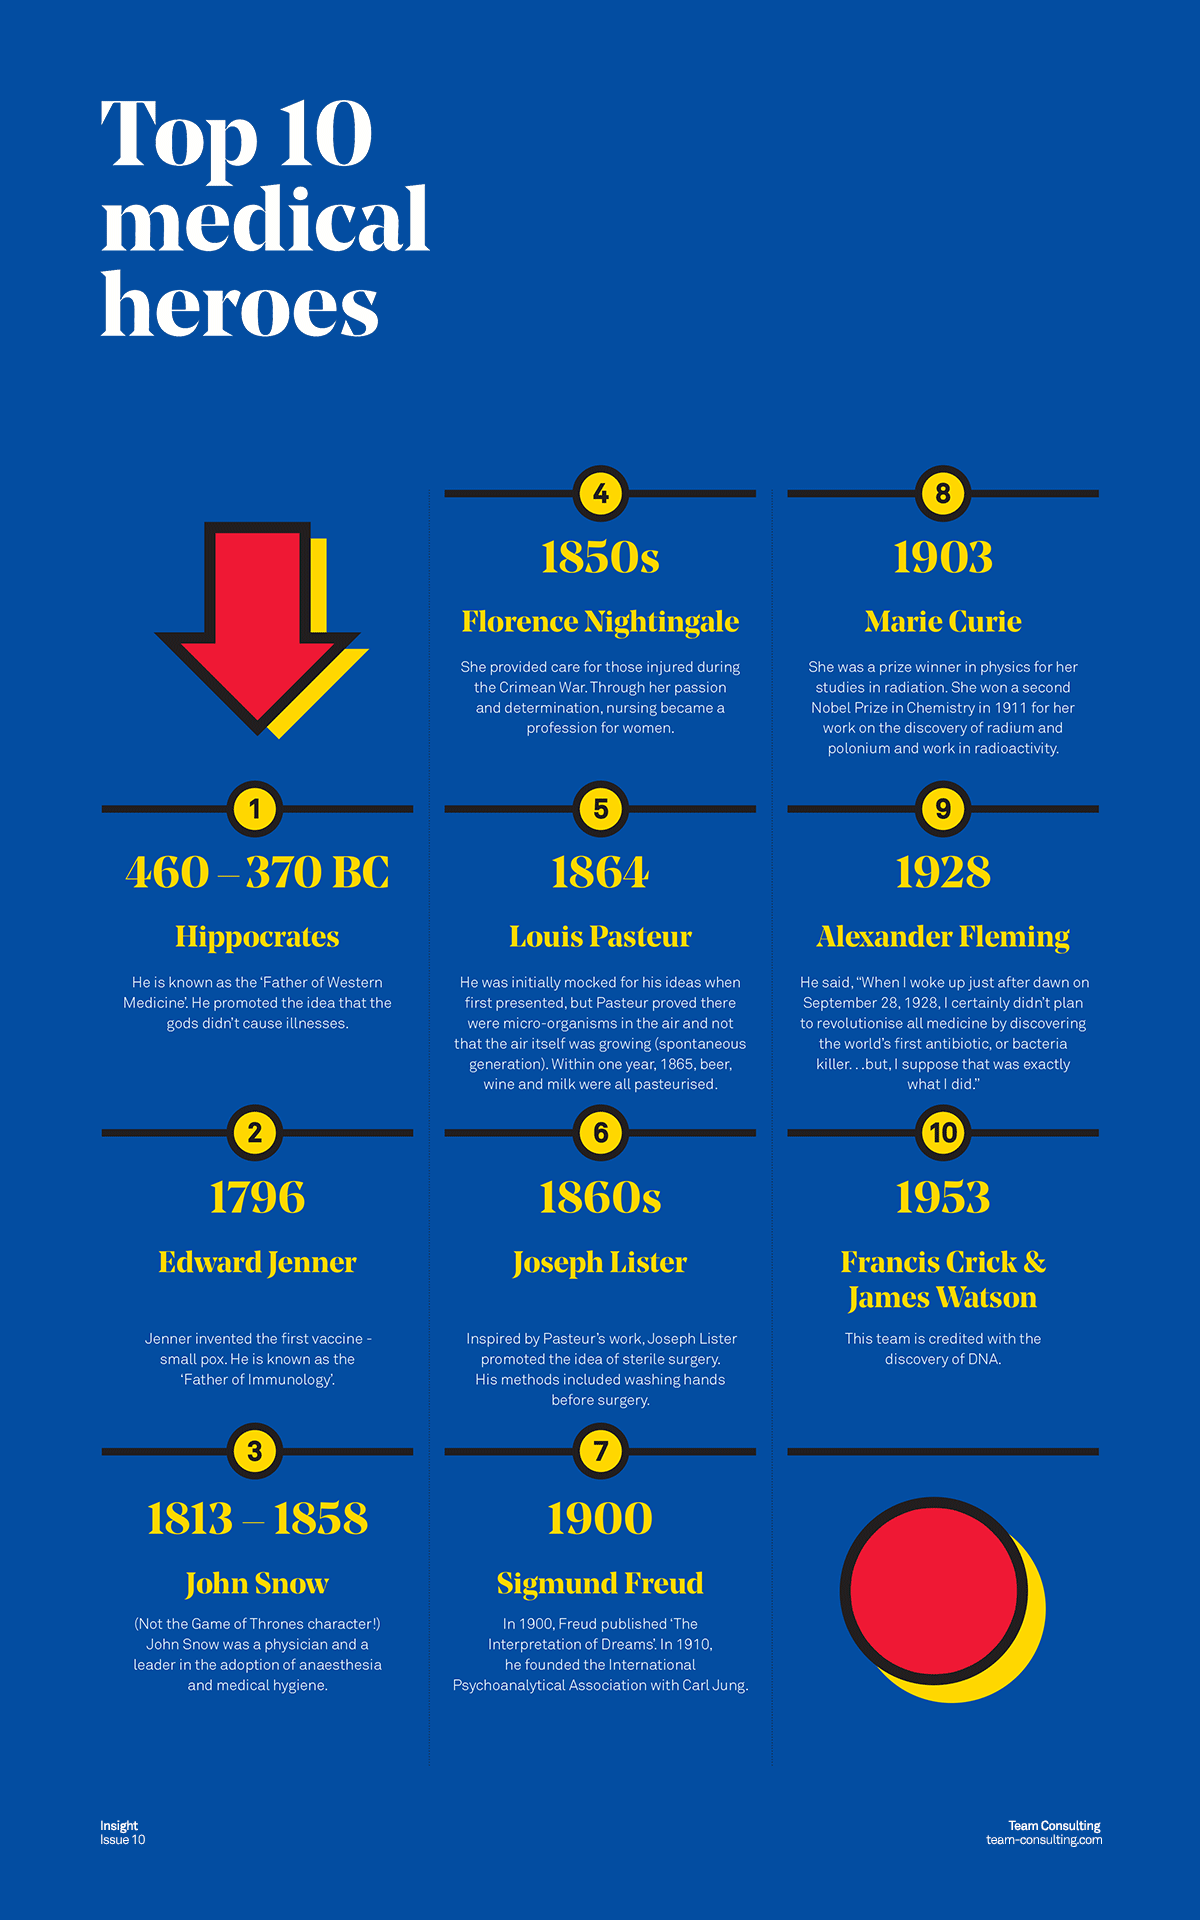 team-consulting-top-10-medical-heroes-countdown-infographic